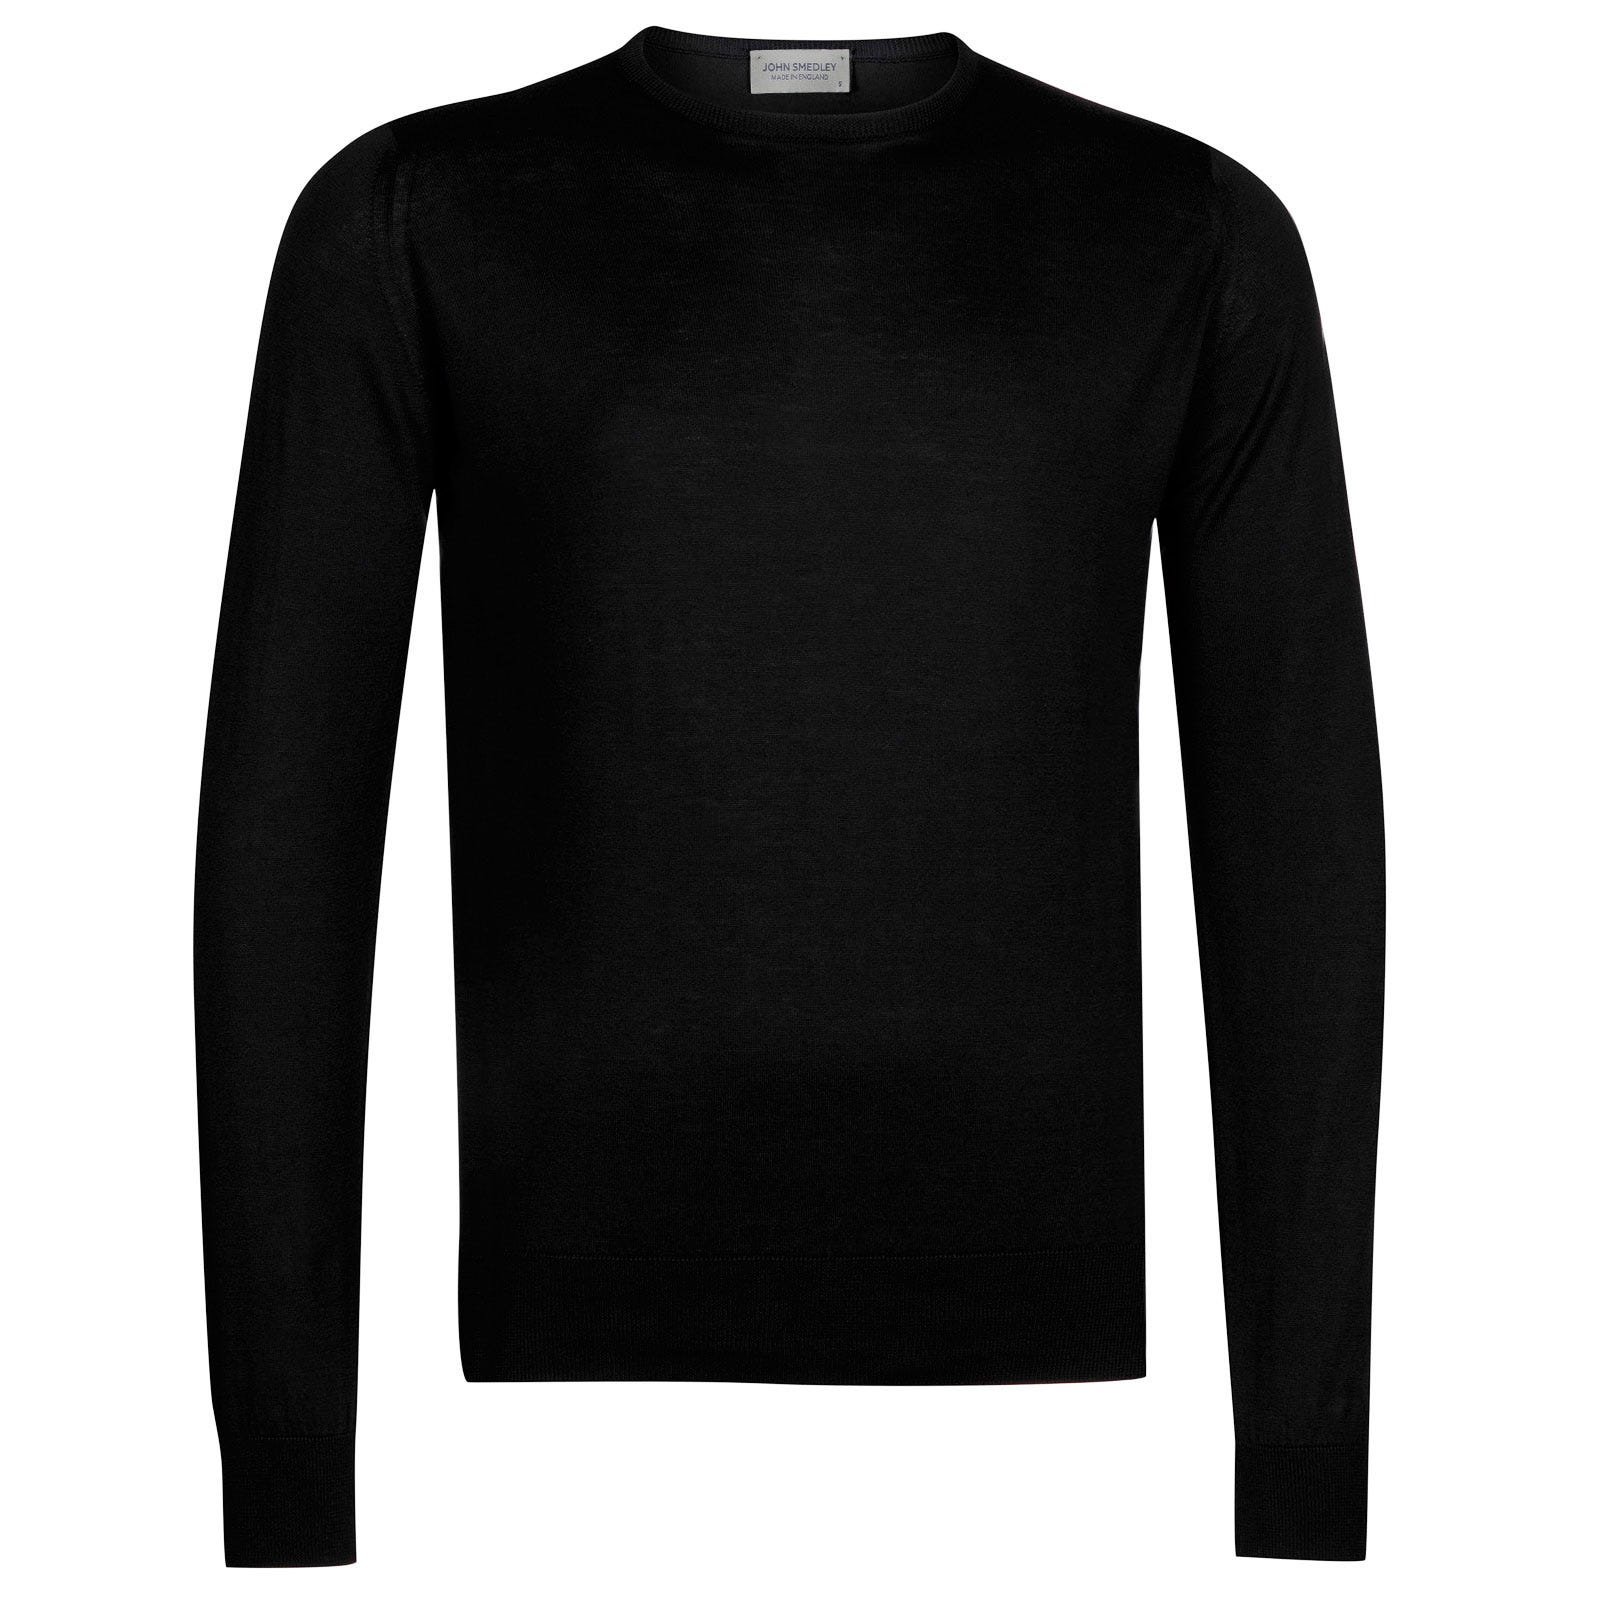 John Smedley hatfield Sea Island Cotton Pullover in Black-XXL